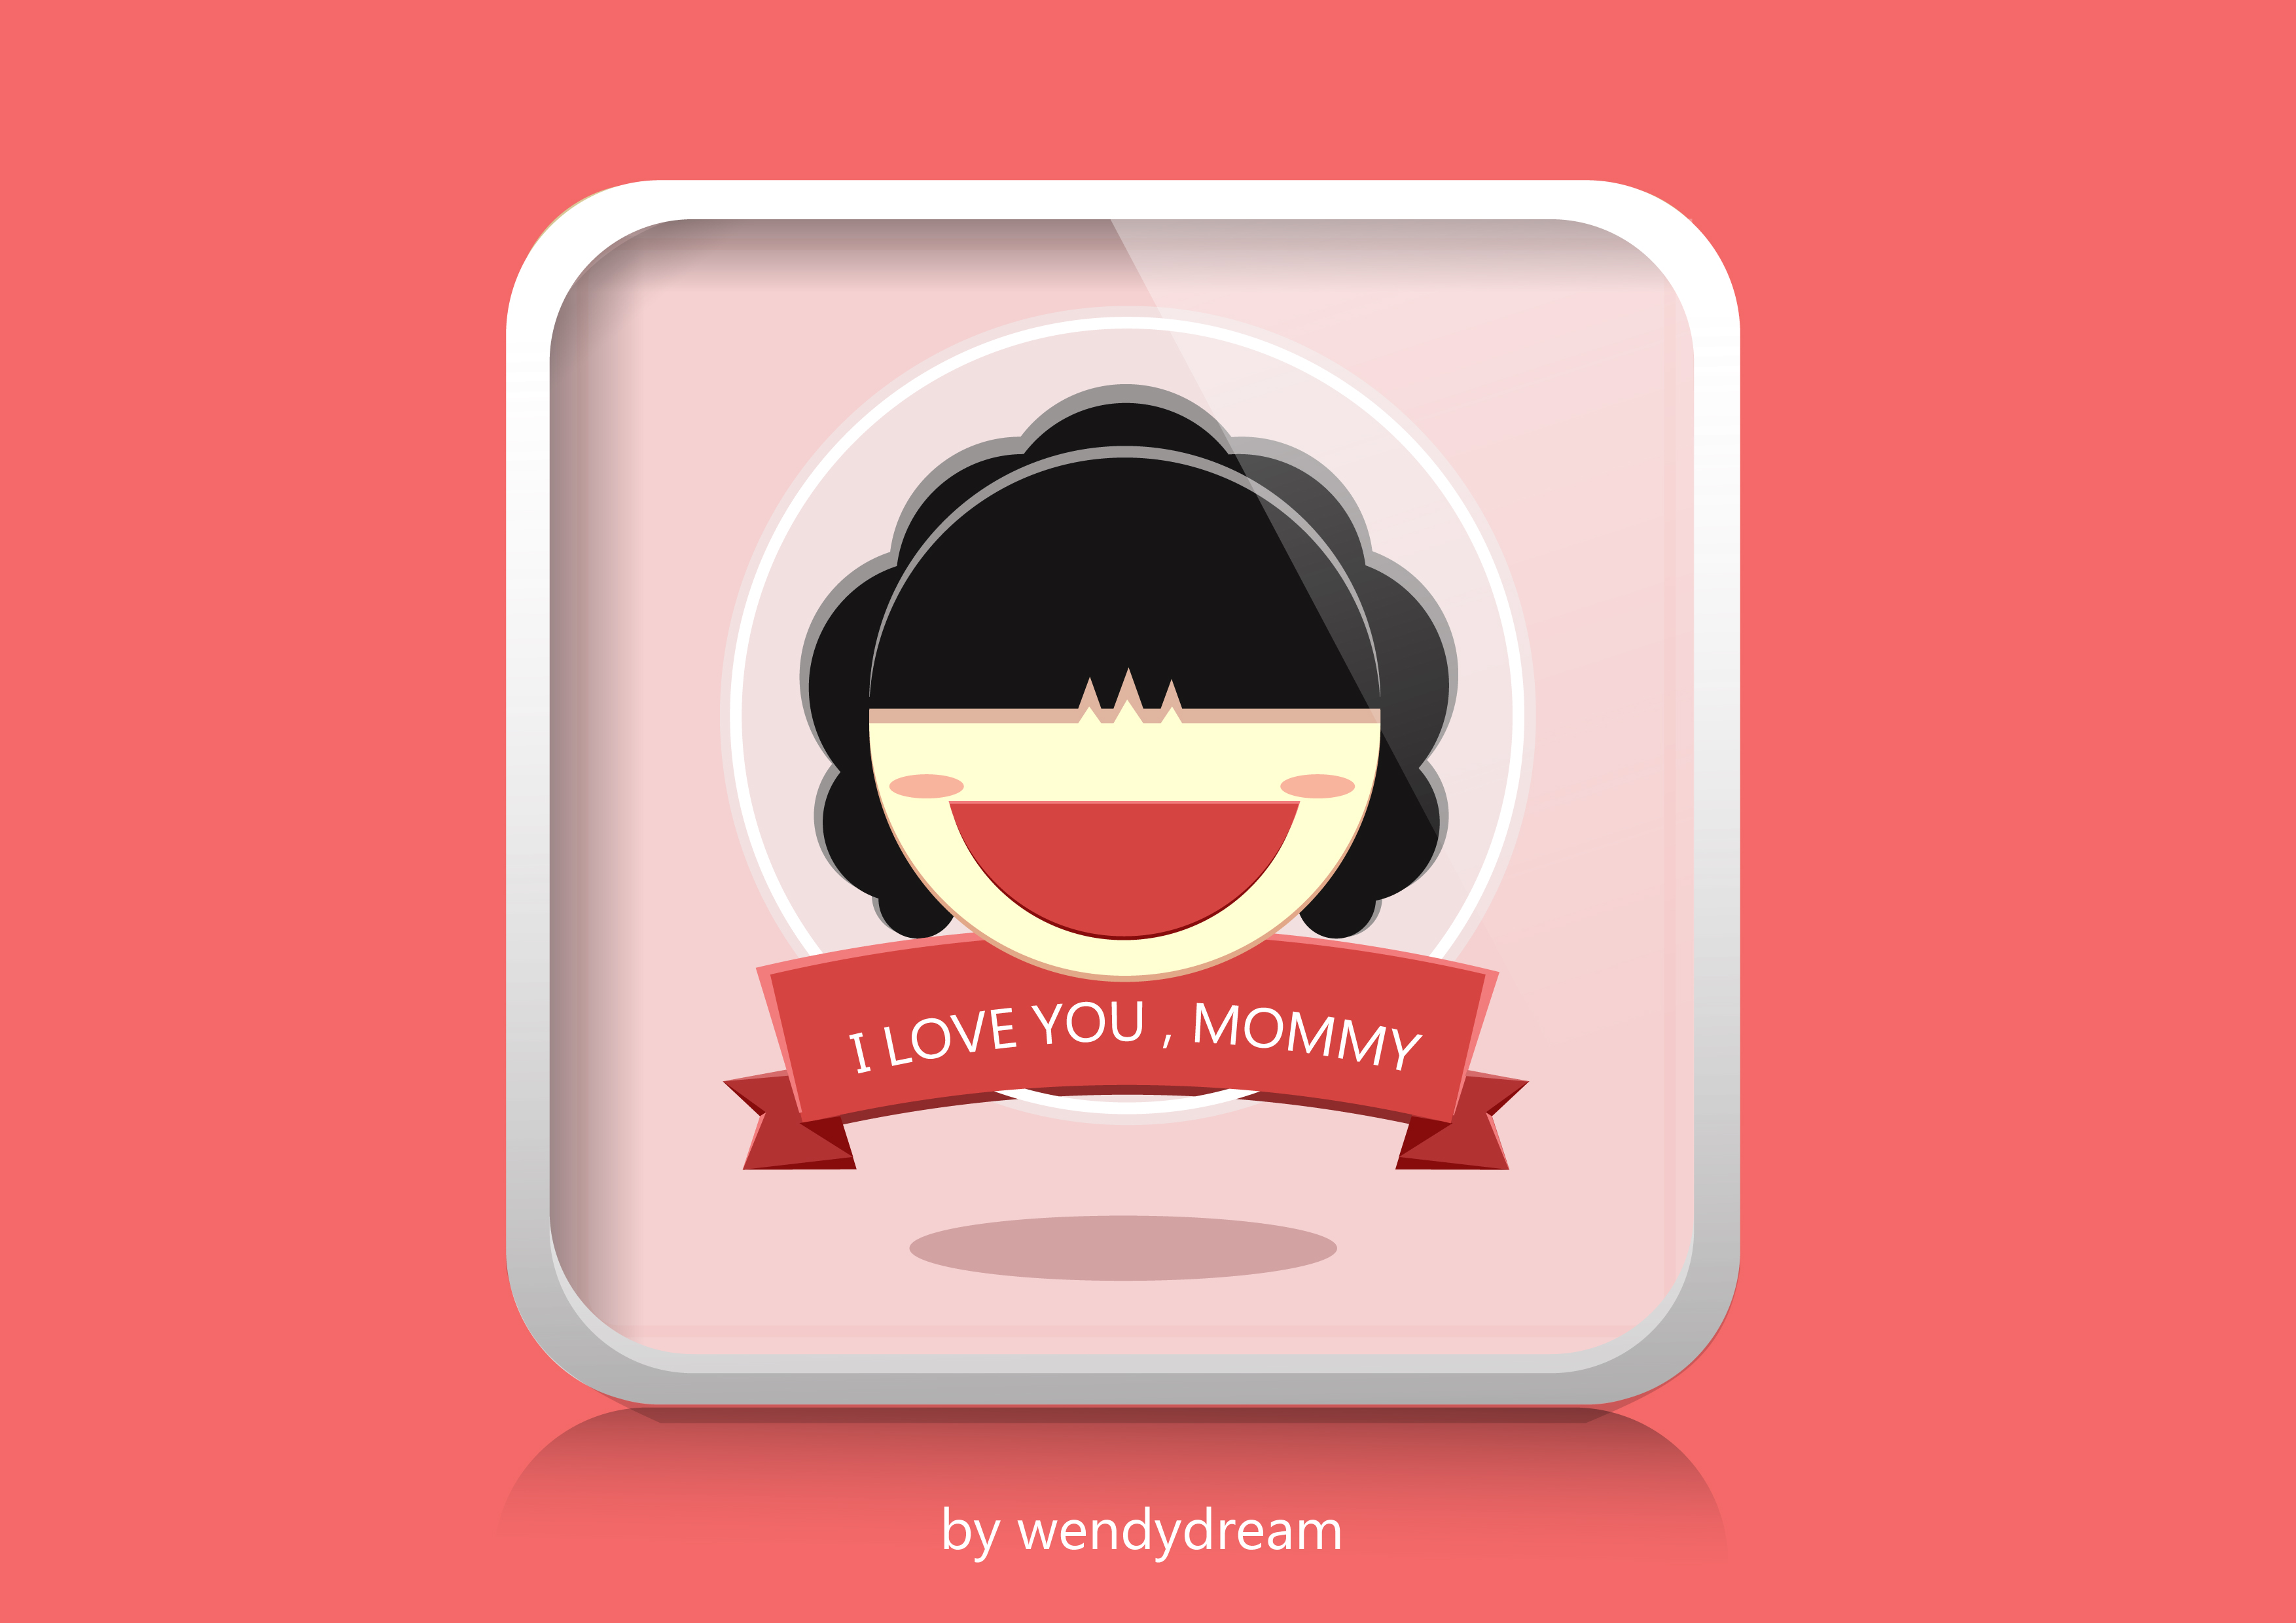 ohyesmommy_ui设计 i love you,mommy